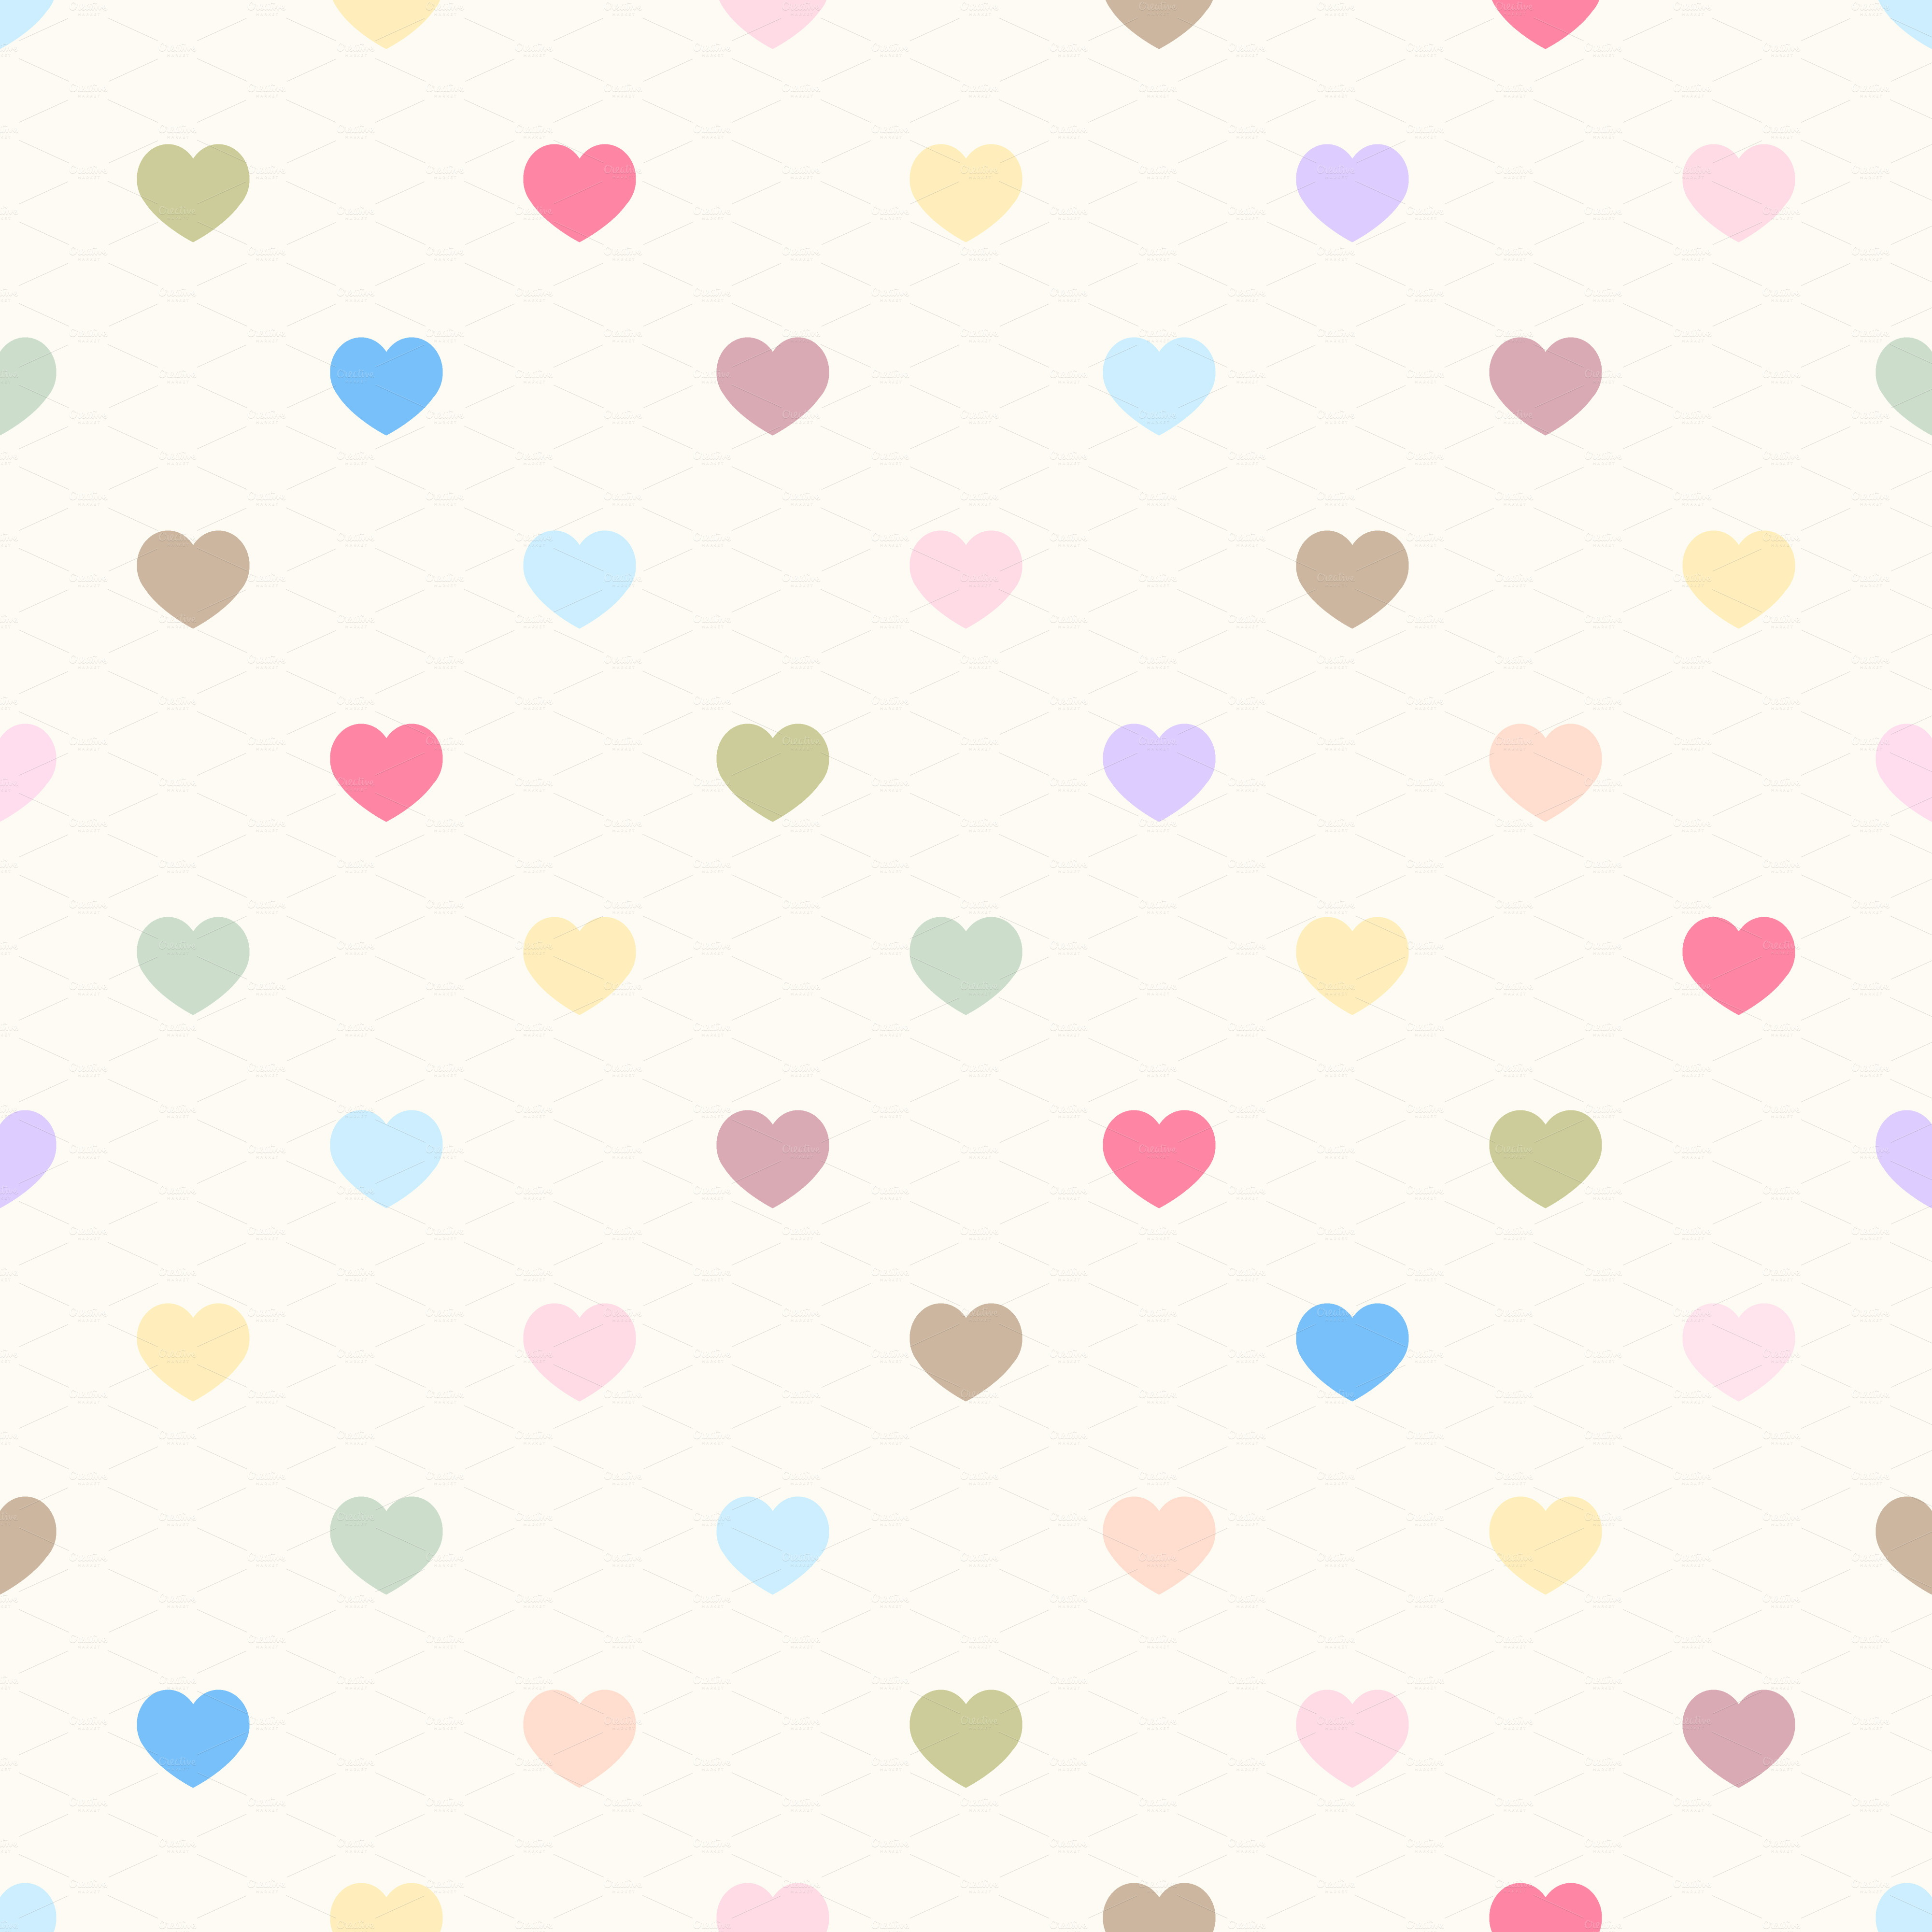 Hearts Tumblr Heart Tumblr Background Heart